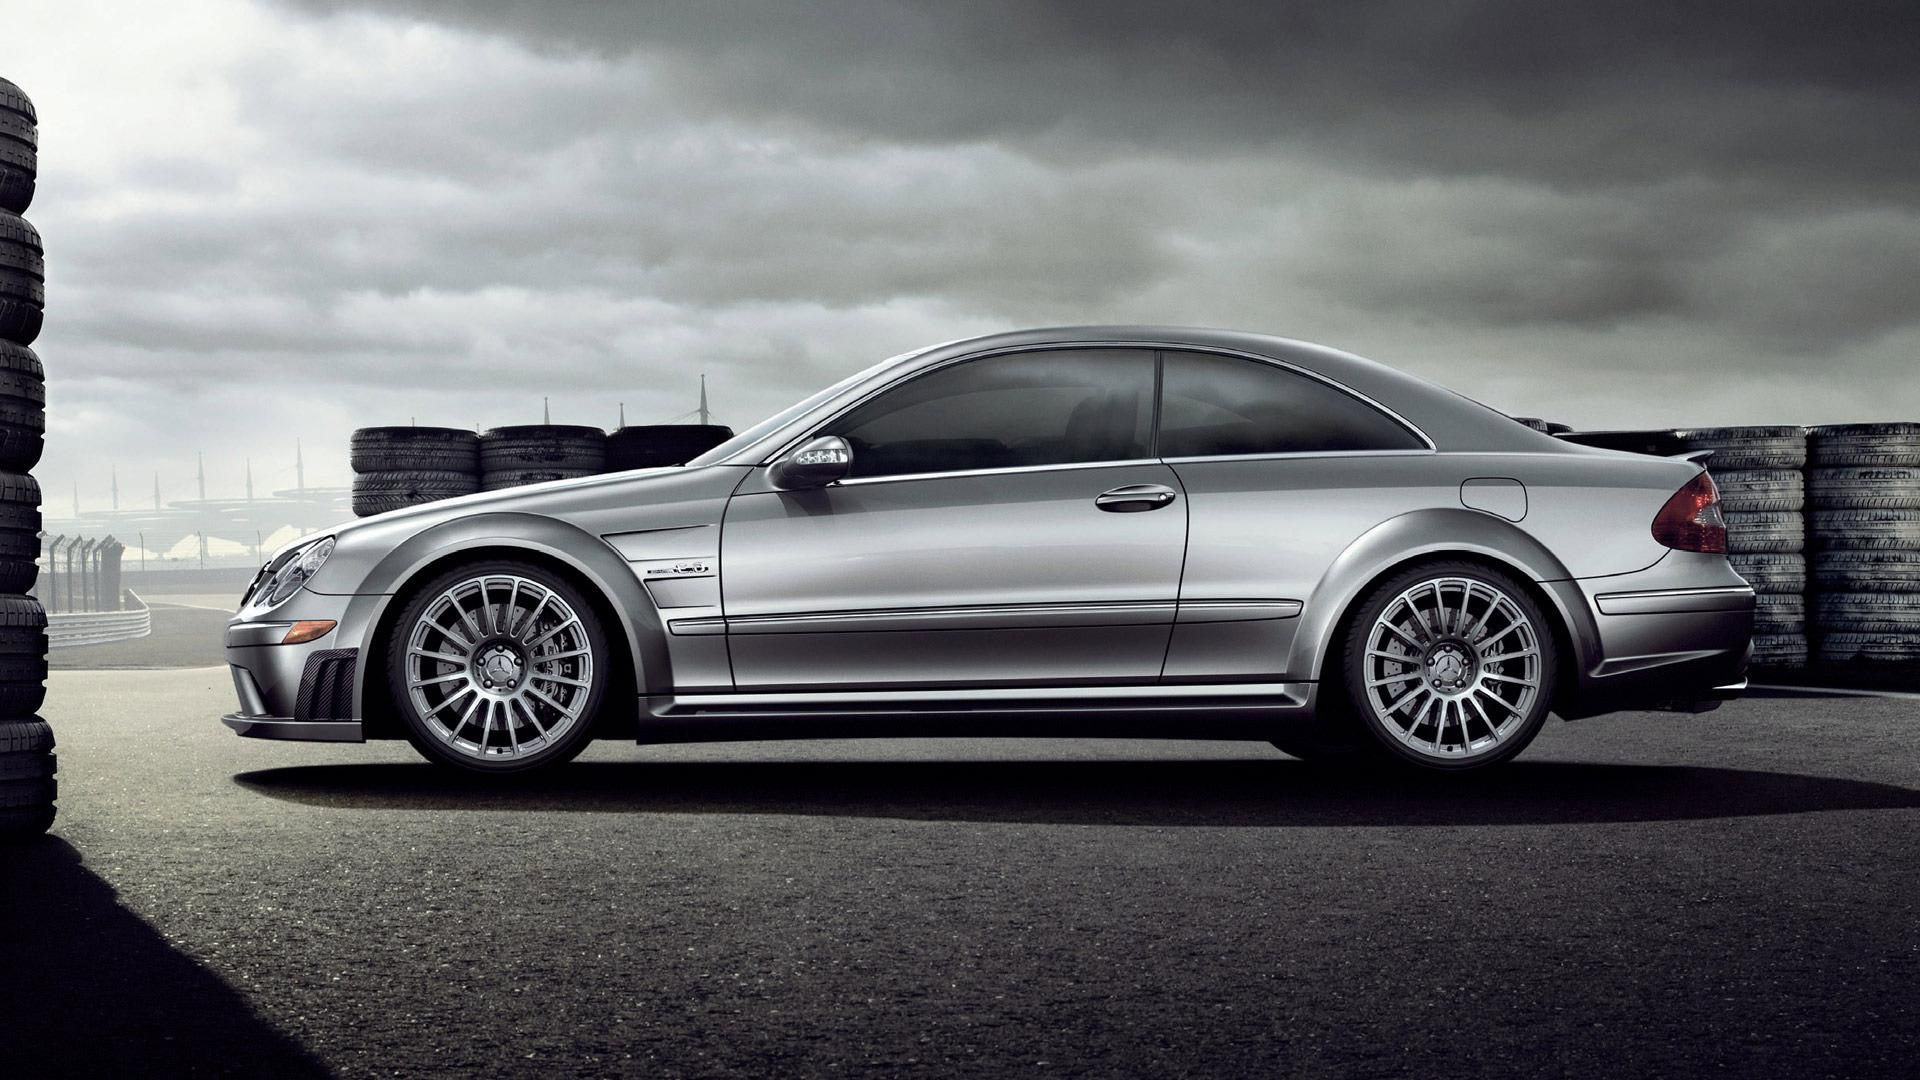 Girl Side Face Wallpaper Hd Mercedes Benz Clk63 Amg Side View Wallpaper Download